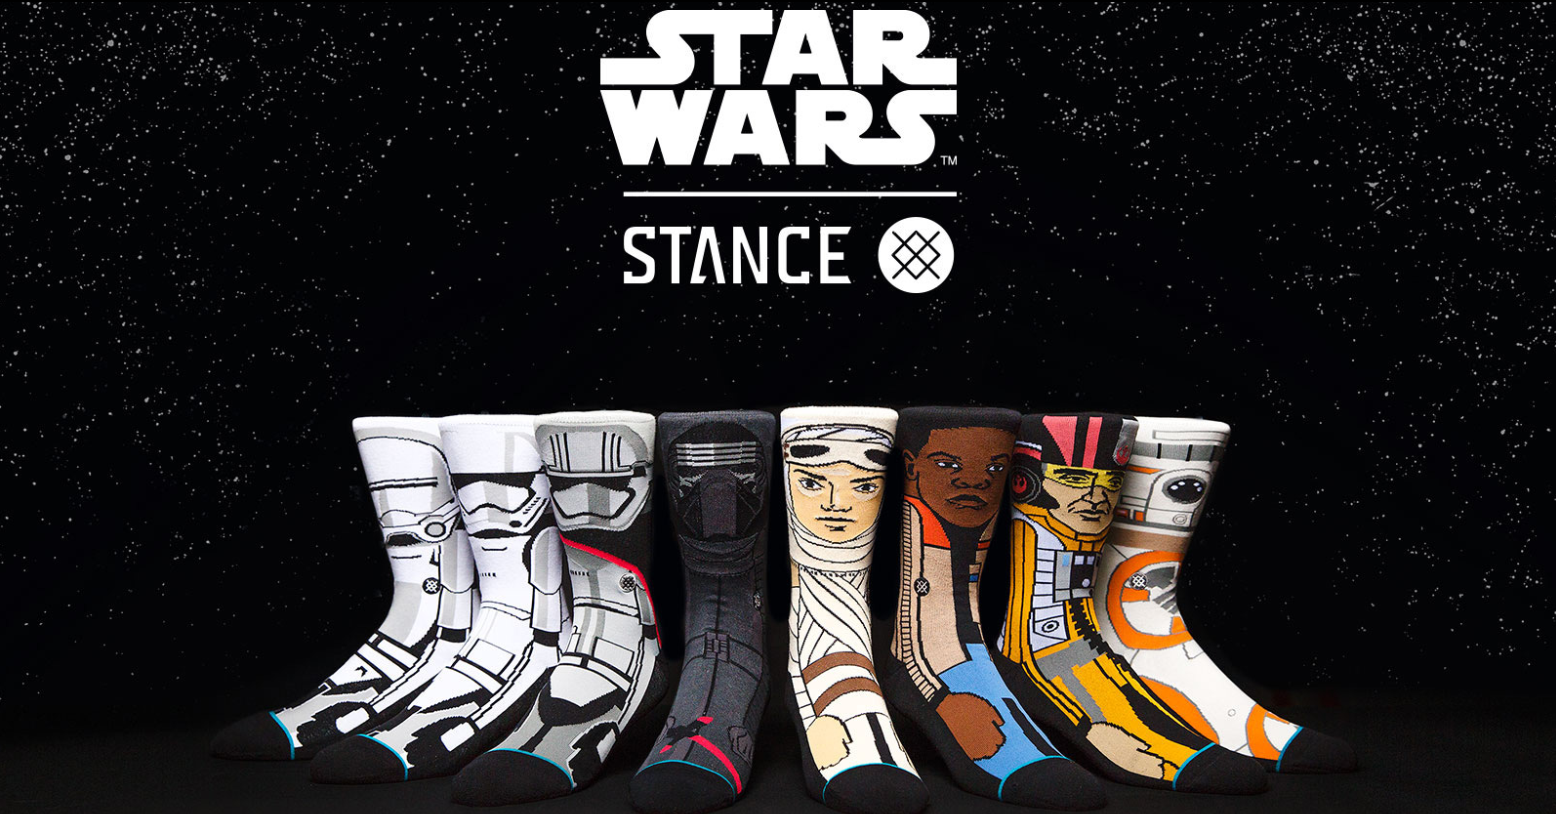 Nerd Alert! New Stance Star Wars socks are in stores now!